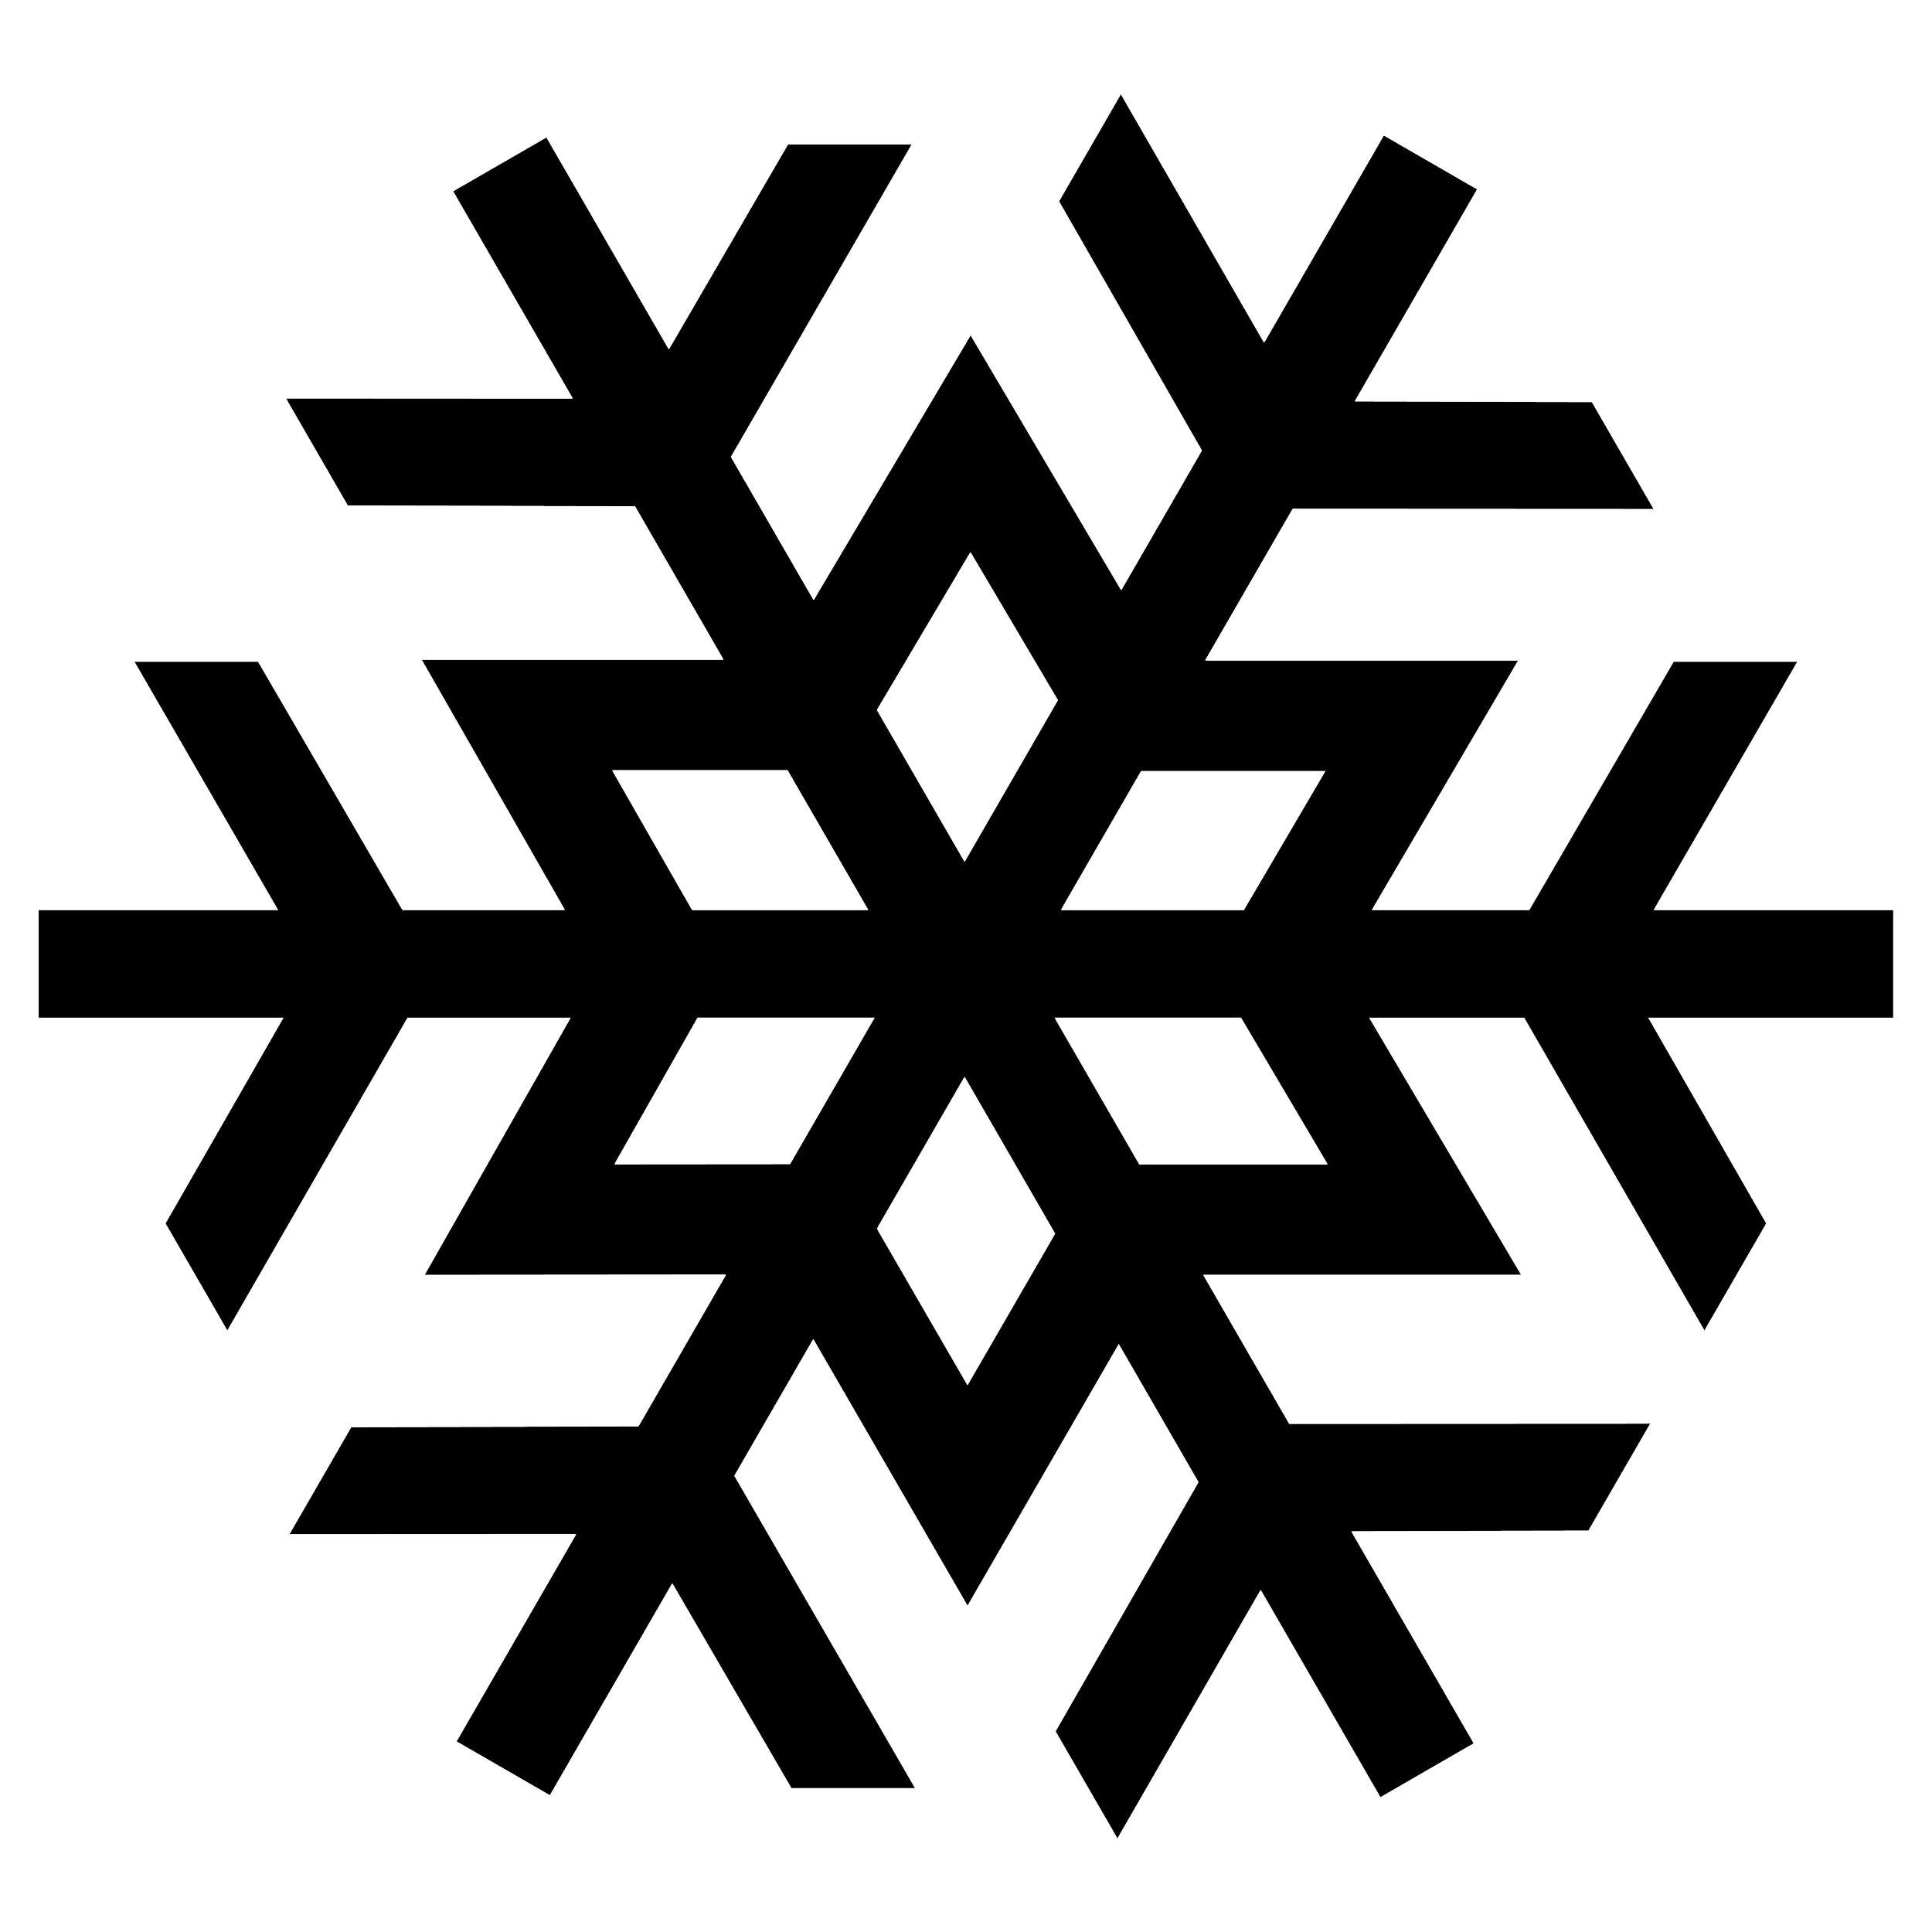 Snowflake clipart black and white disney frozen jpg royalty free download snowflake silhouette - Google Search | shapes - line | Pinterest ... jpg royalty free download